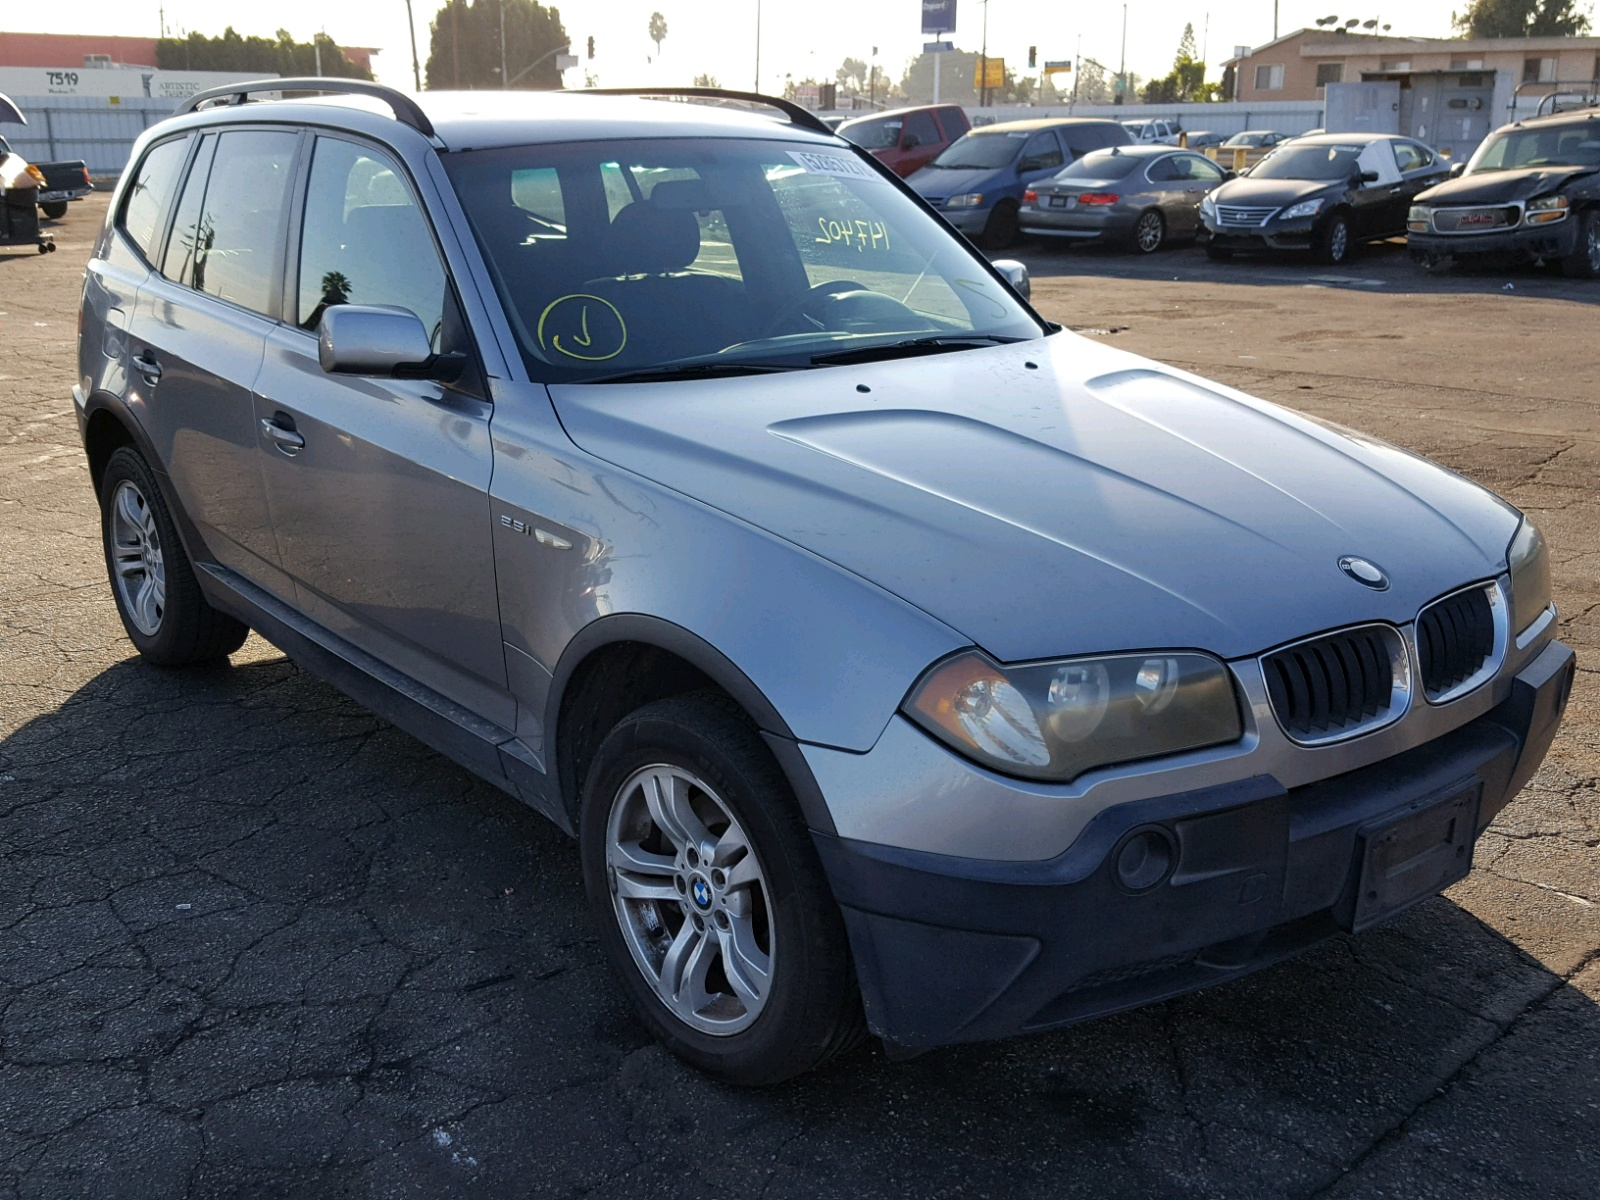 2004 Bmw X3 25I 25L 6 In CA Van Nuys WBXPA73414WA77858 For